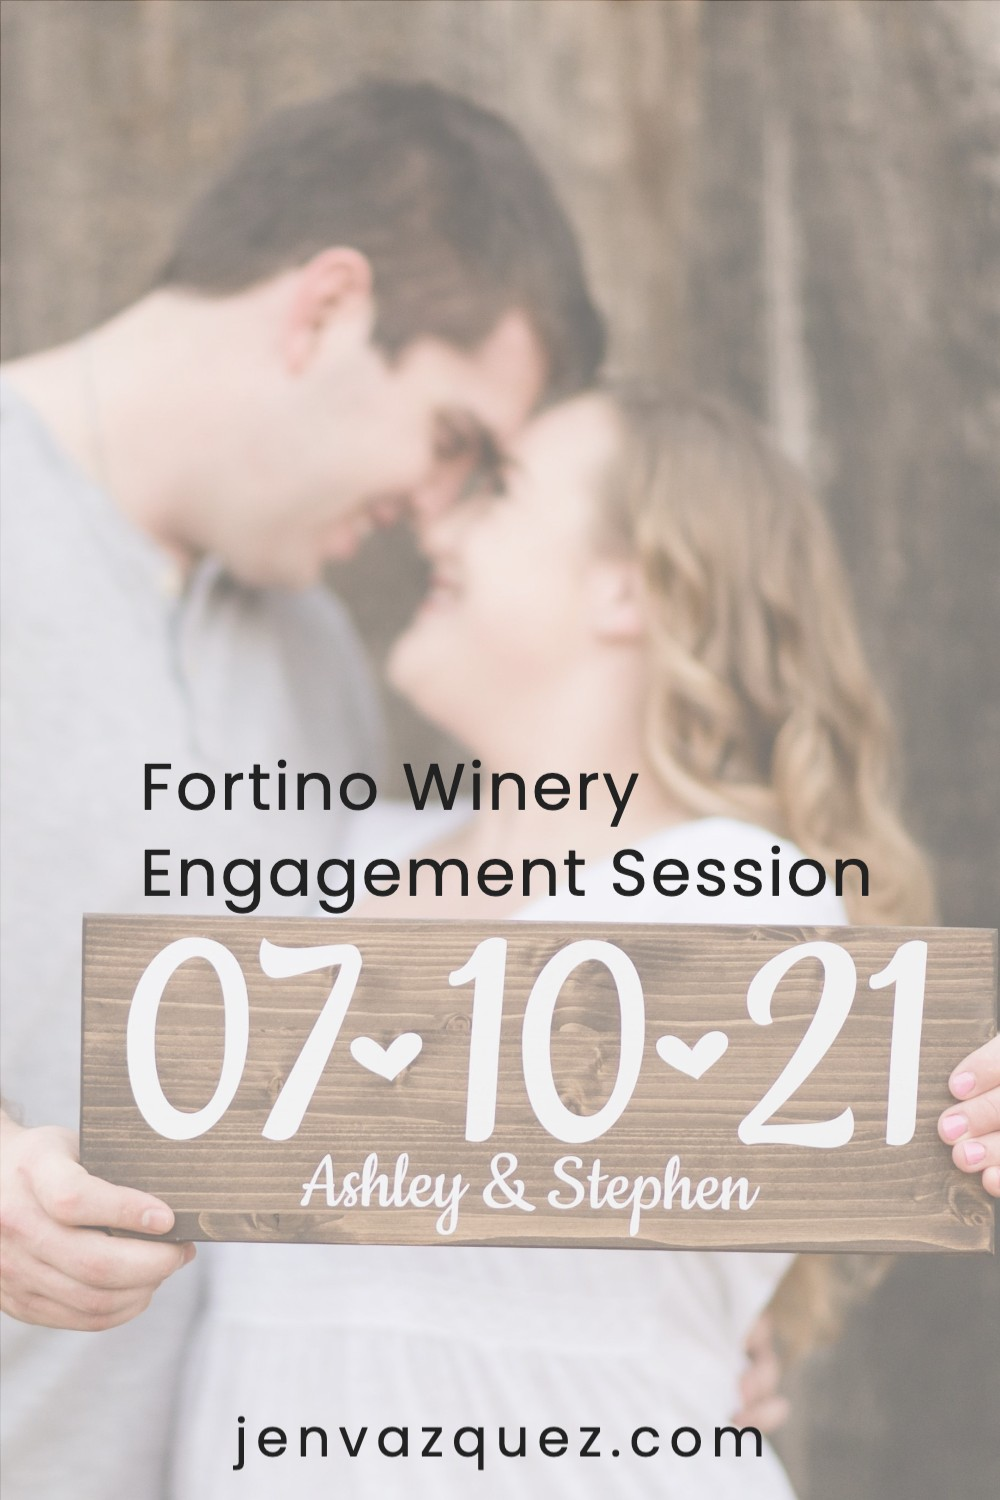 Fortino-Winery-Engagement-Session-|-Ashley-+-Stephen-|-Destination-Wedding-Photographer-|-Jen-Vazquez-Photography 2